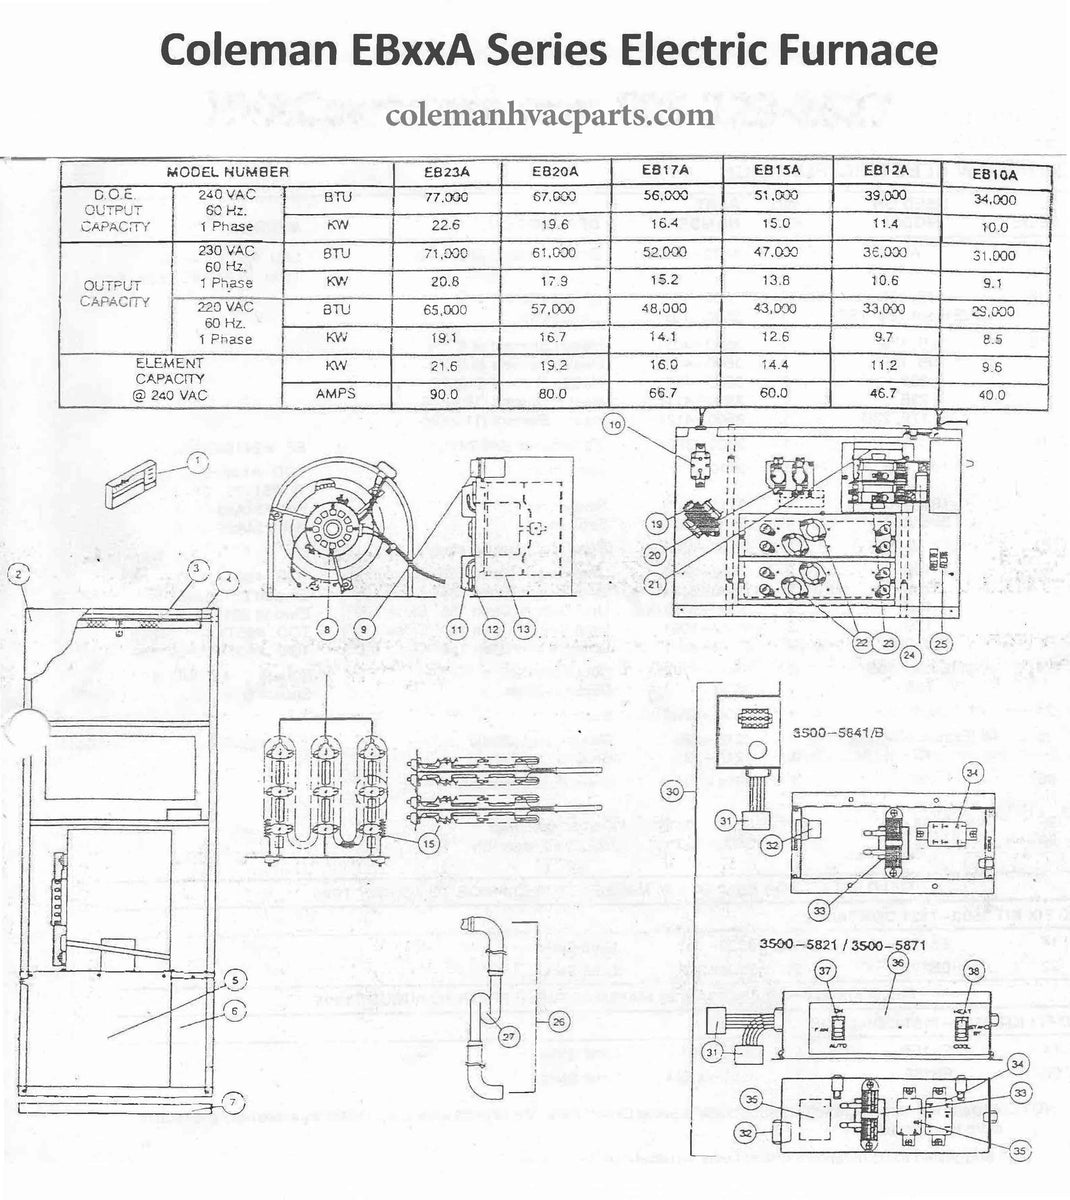 eb10a coleman electric furnace parts  u2013 hvacpartstore